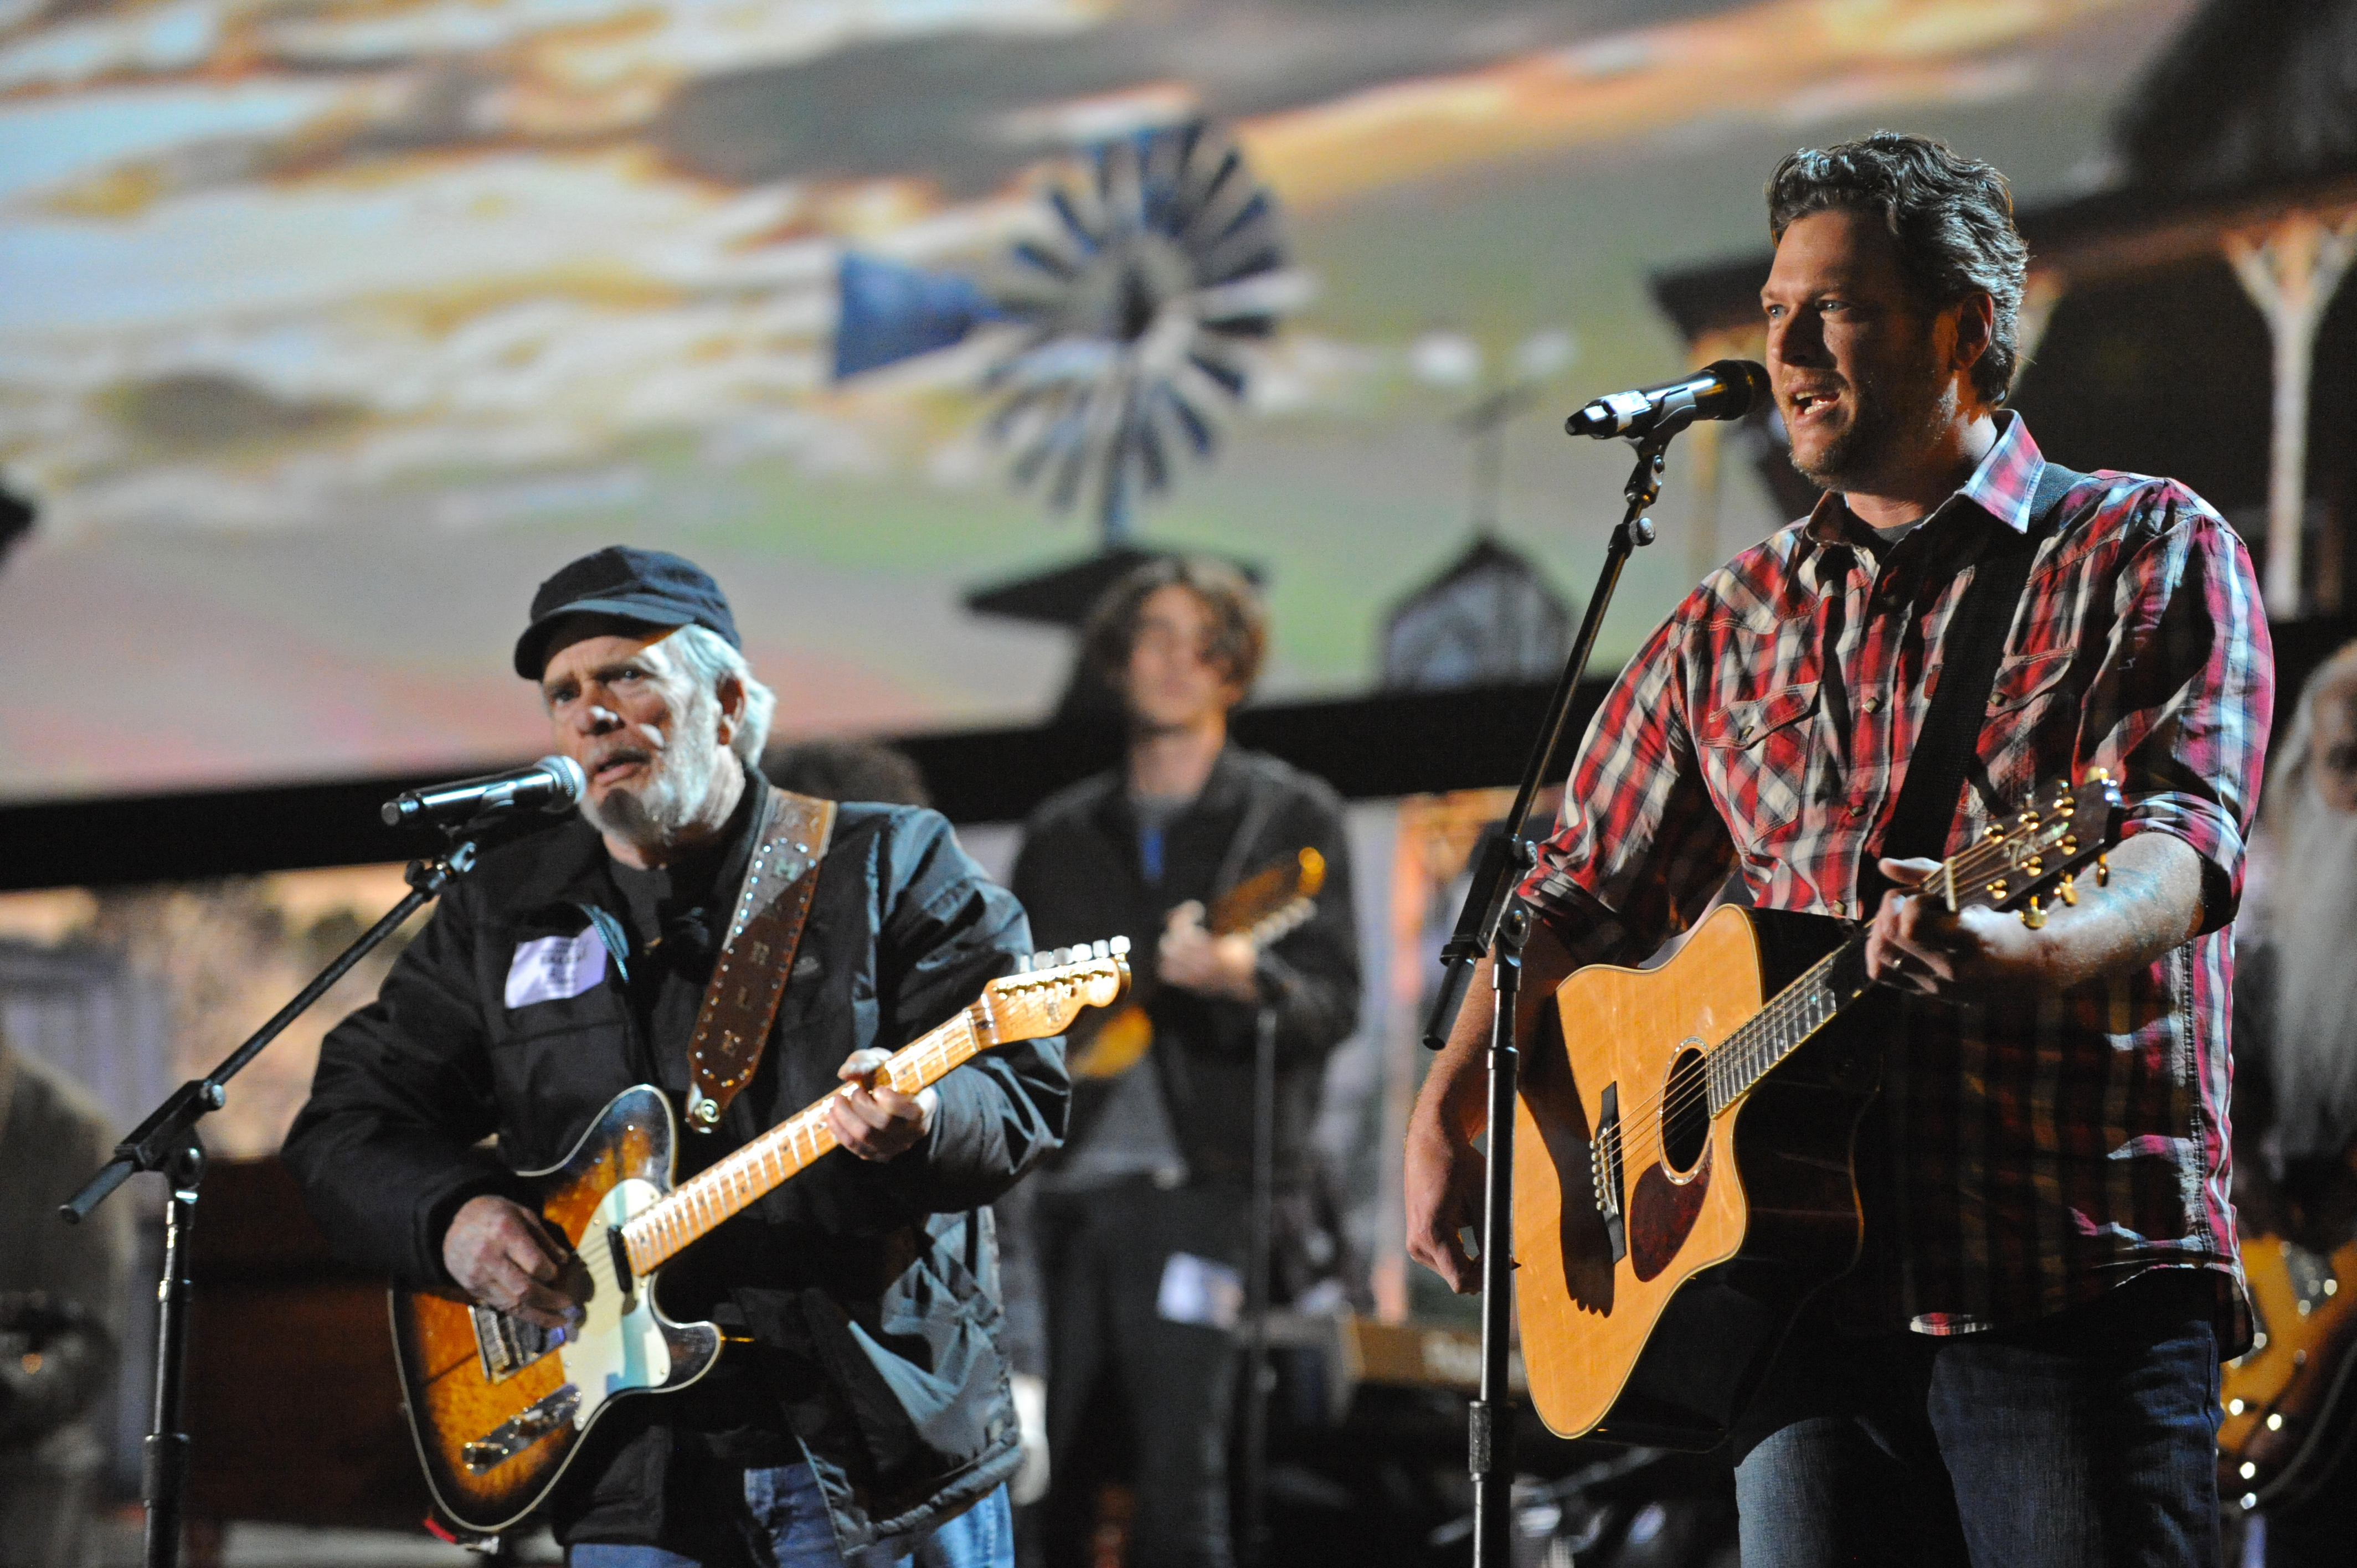 2014 GRAMMY Rehearsal Photos - Merle Haggard and Blake Shelton